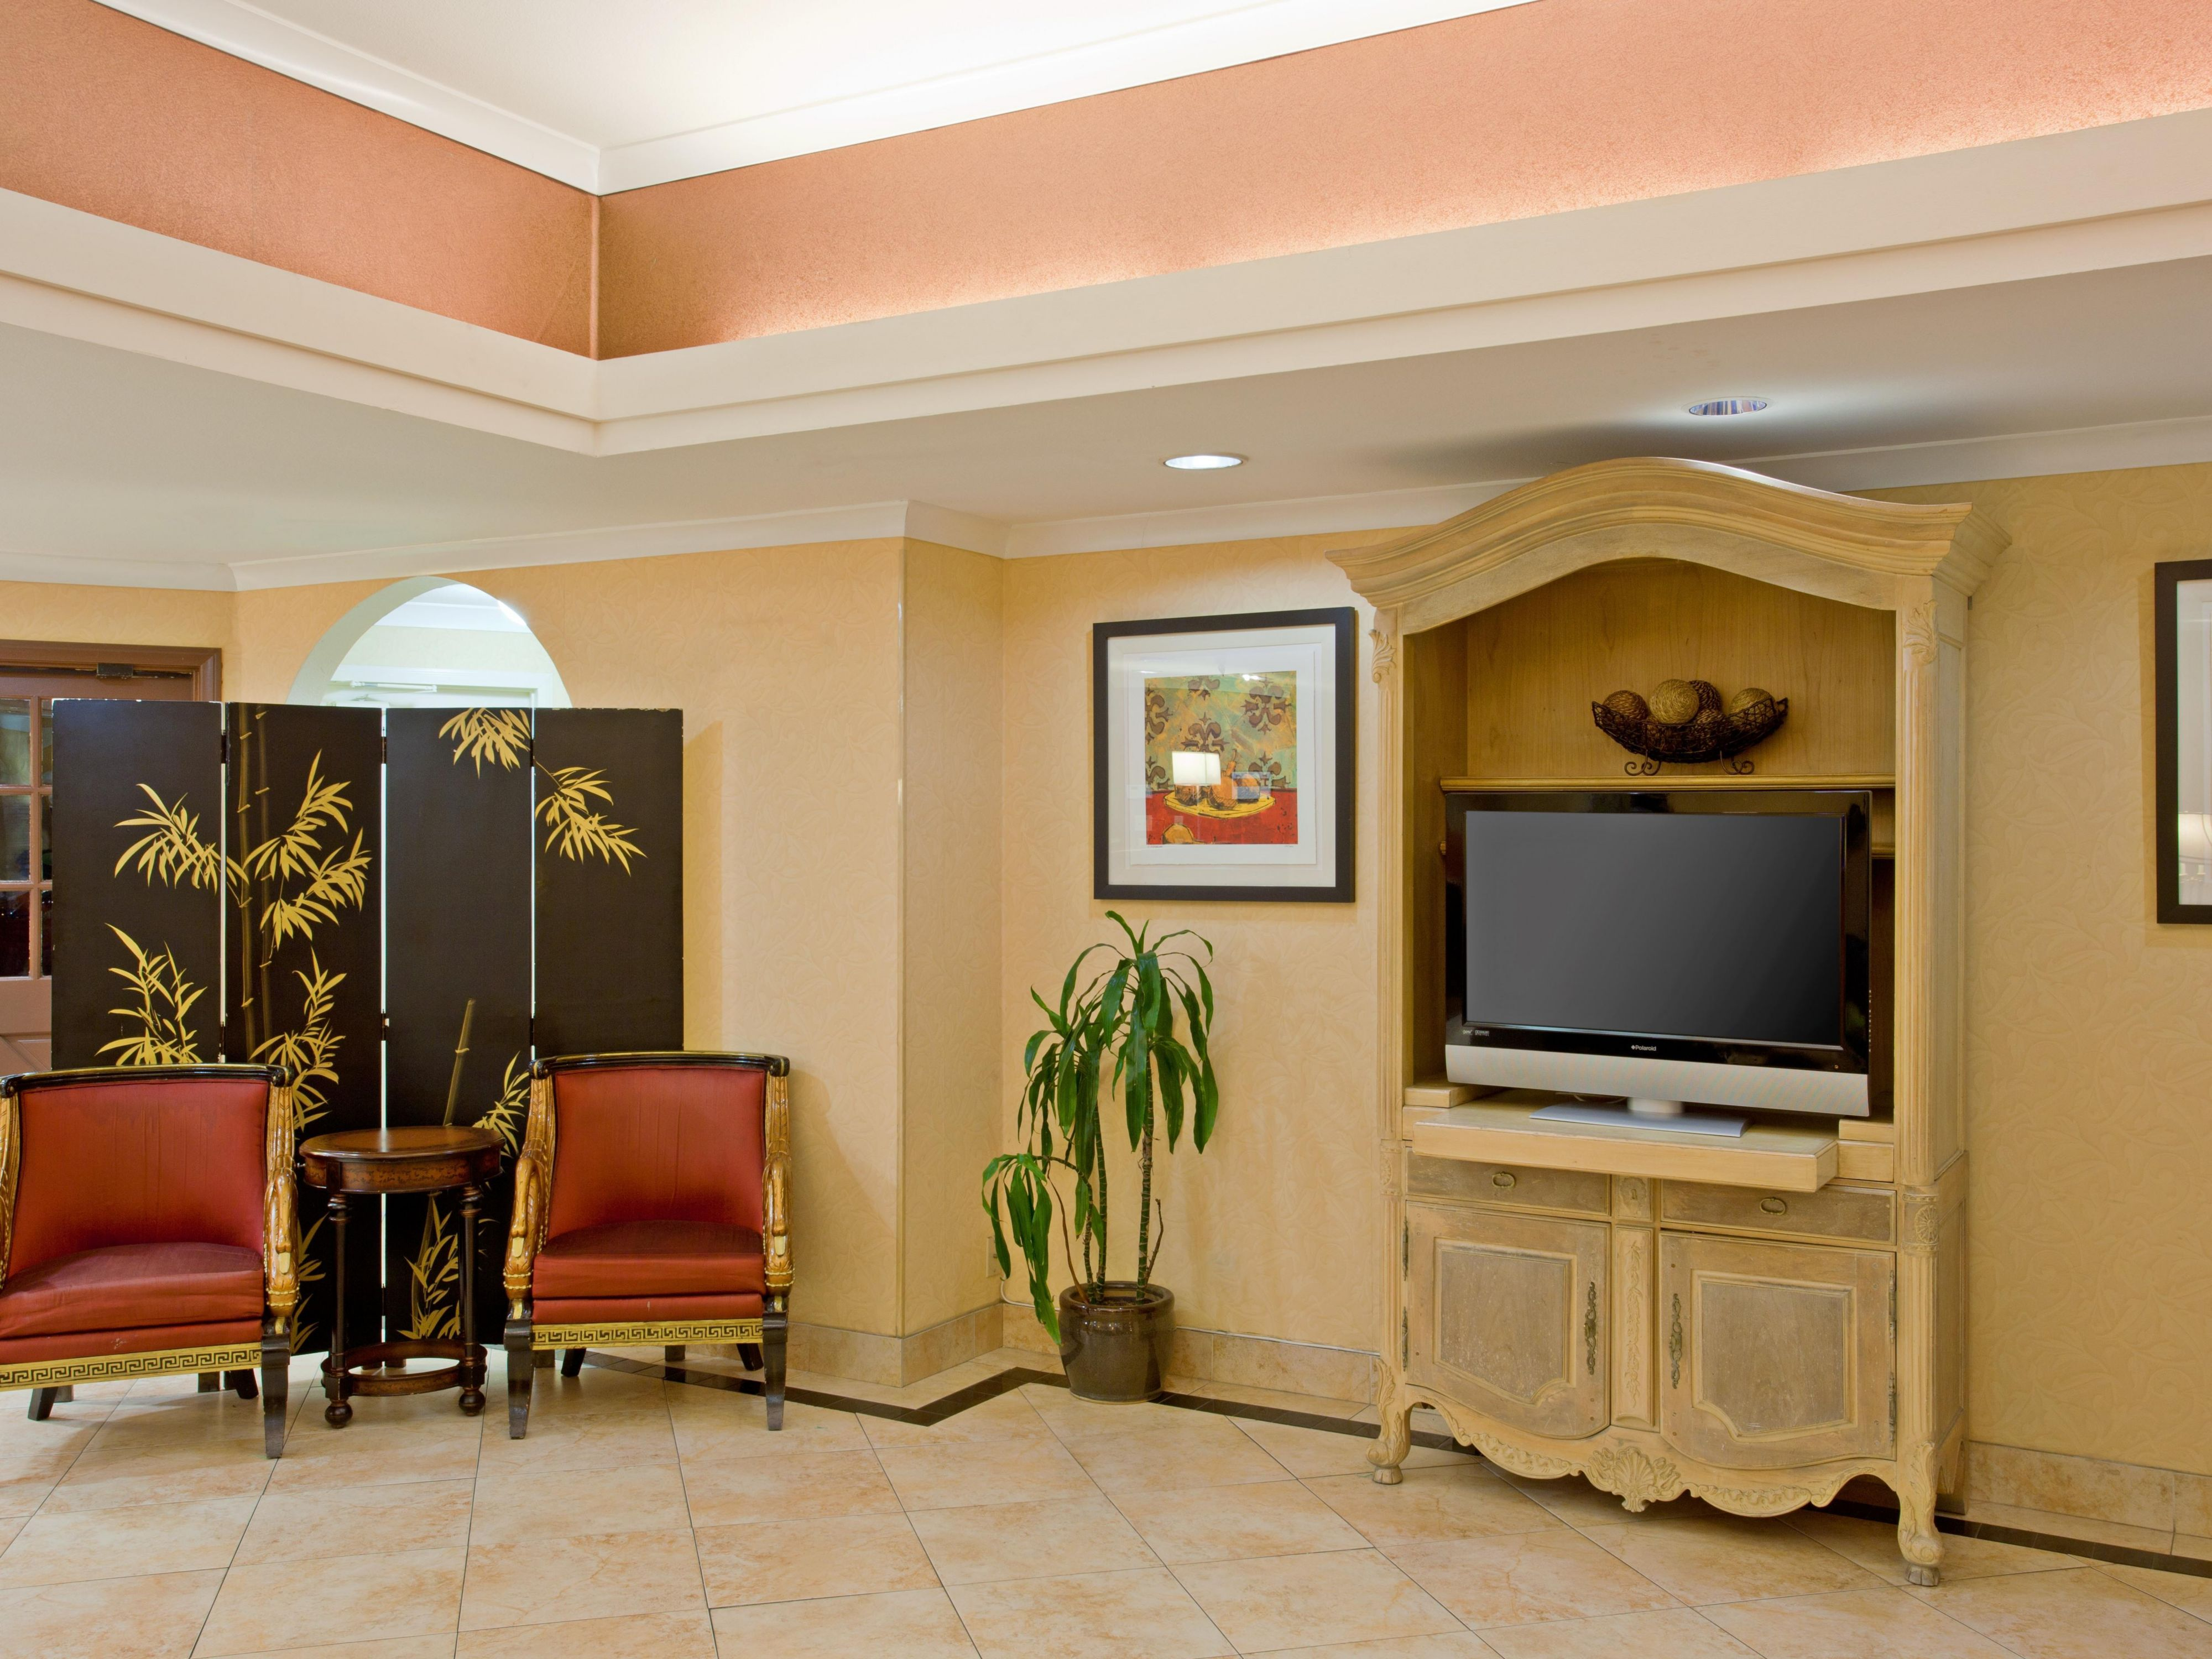 Holiday Inn Express La Mesa-Hotel Lobby